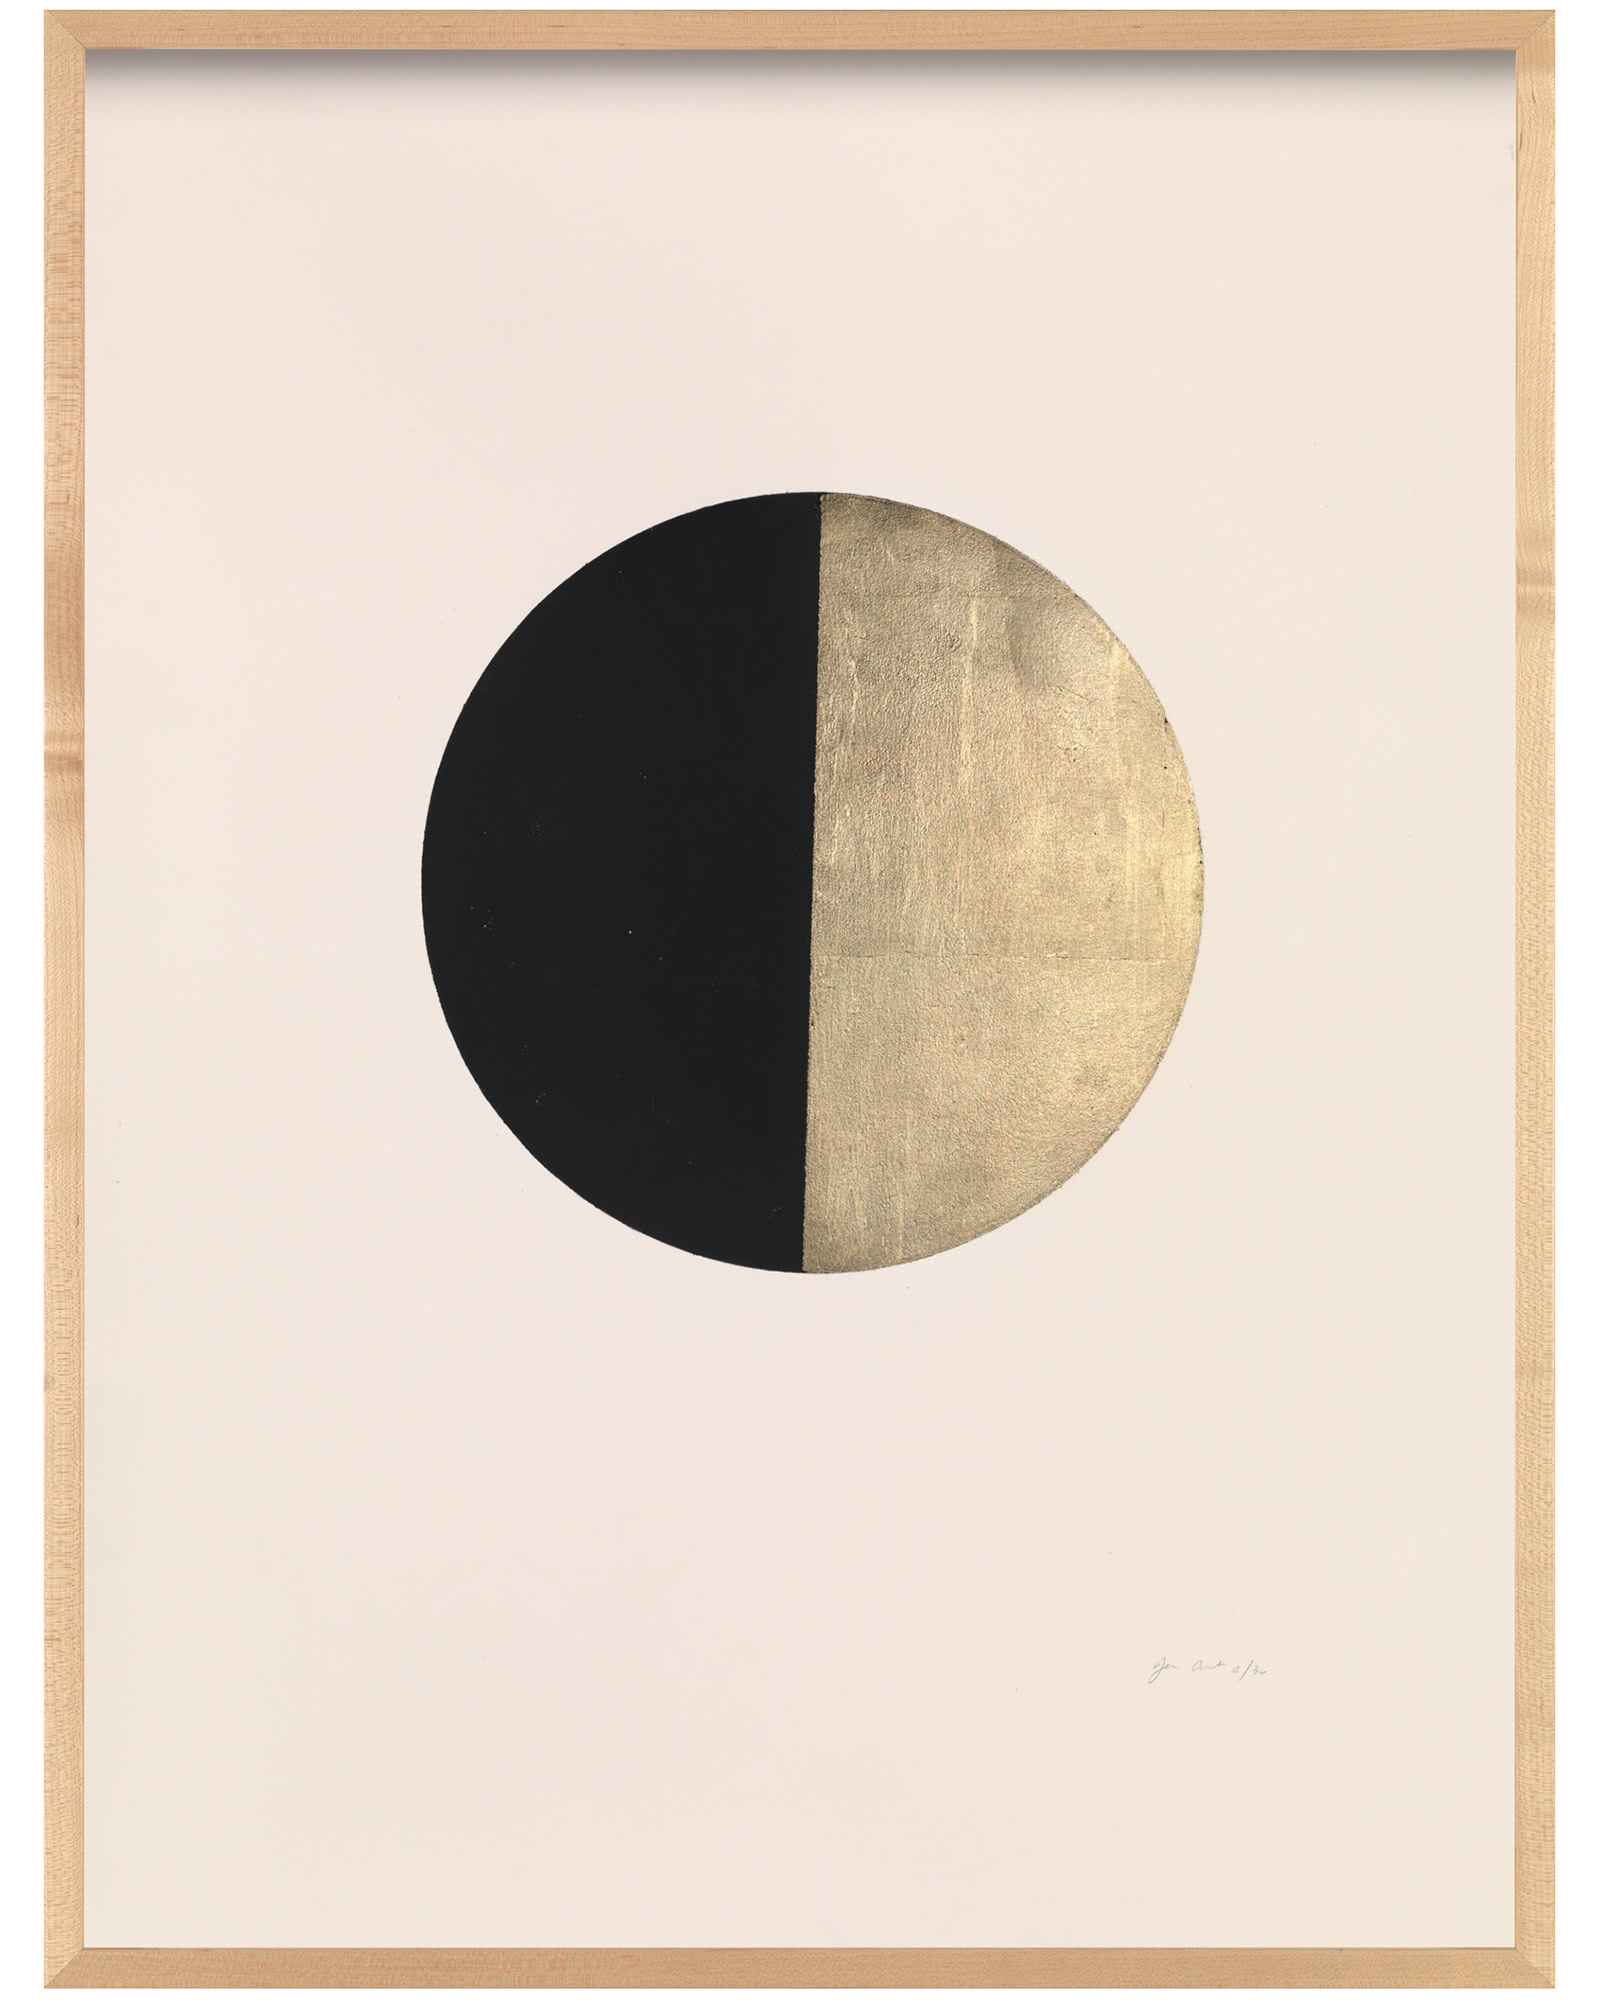 Moon Phase 3 by Jennifer Ament,